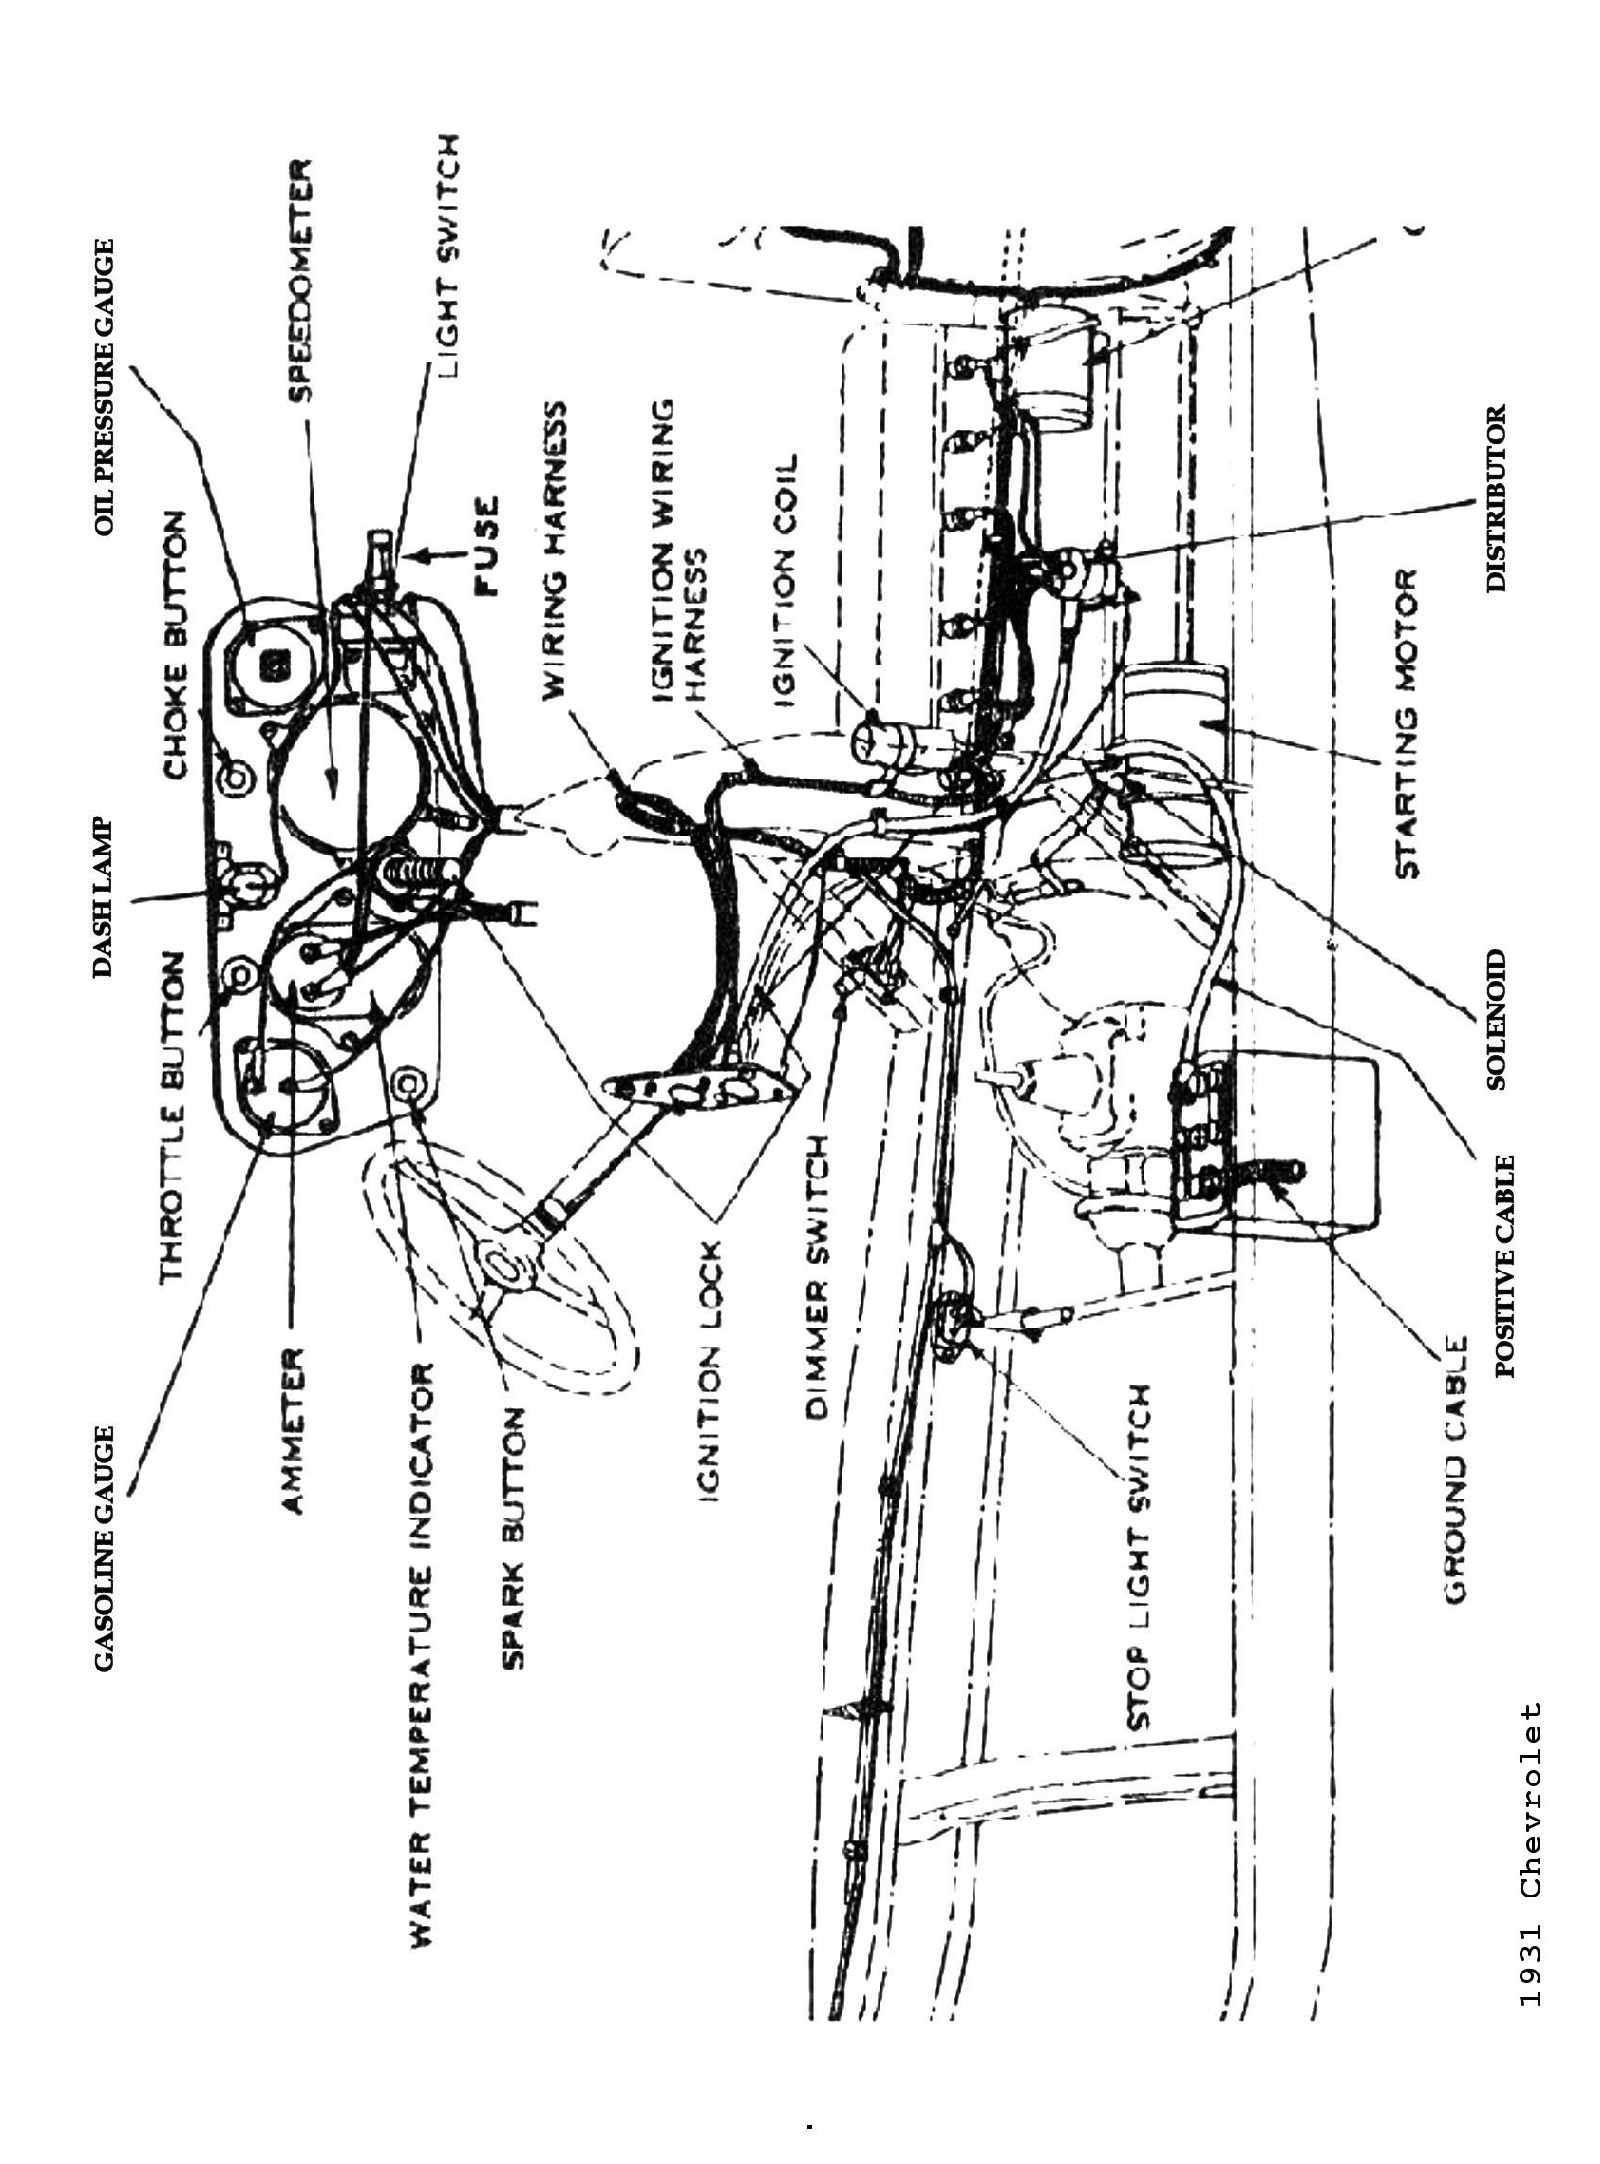 31harness chevy wiring diagrams 1979 Chevrolet Wiring Diagram at edmiracle.co